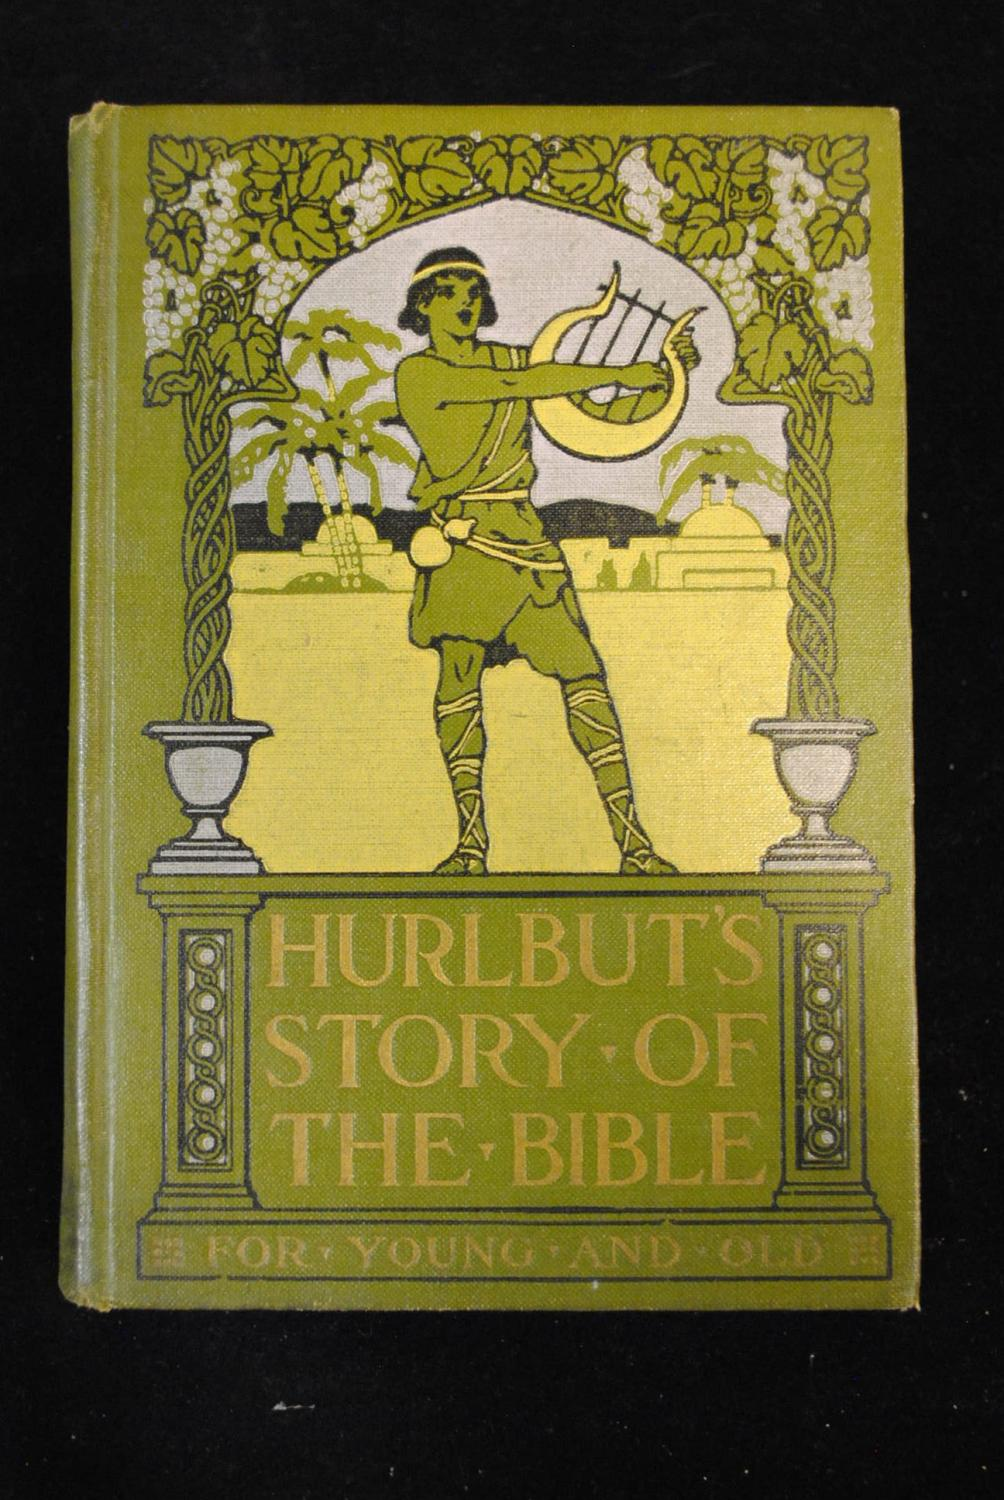 HURLBUT'S STORY OF THE BIBLE, SELF PRONOUNCING: The Complete Bible Story,  running From Genesis to Revelation, Told in the Simple Language of To-day  for Young and Old. One Hundred and Sixty-eight Stories